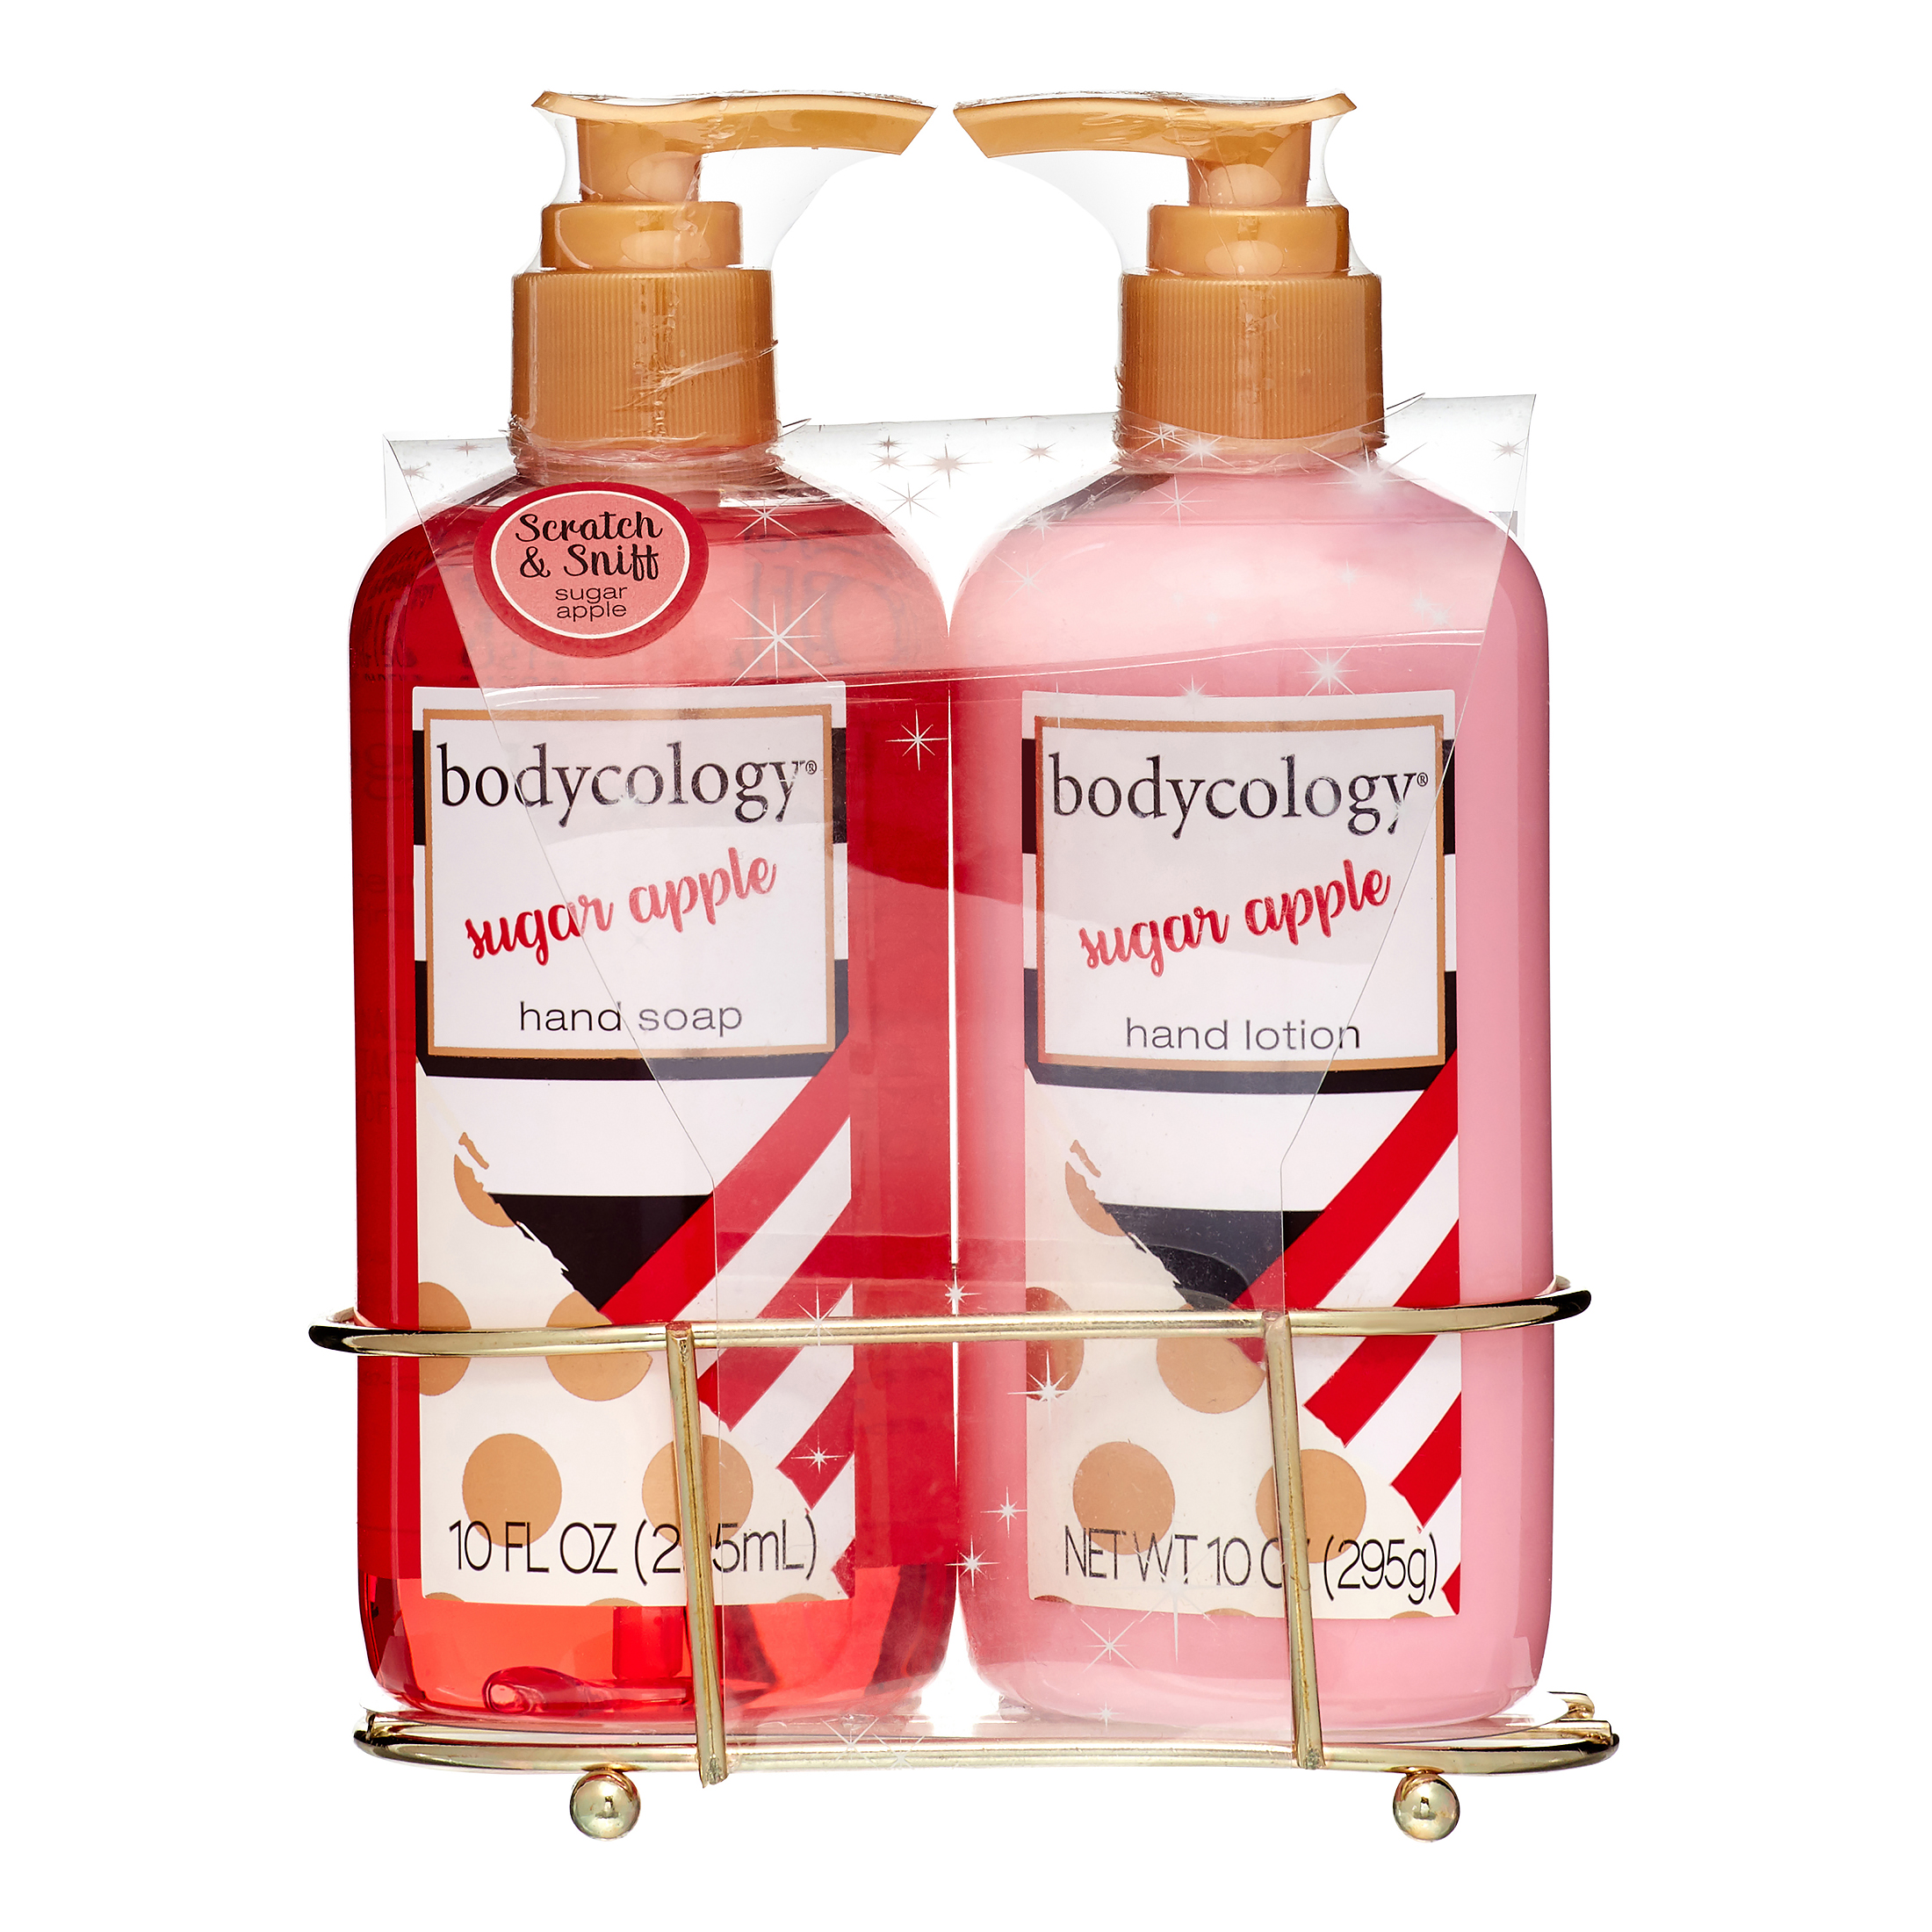 Bodycology Sugar Apple Hand Soap & Hand Lotion Gift Set